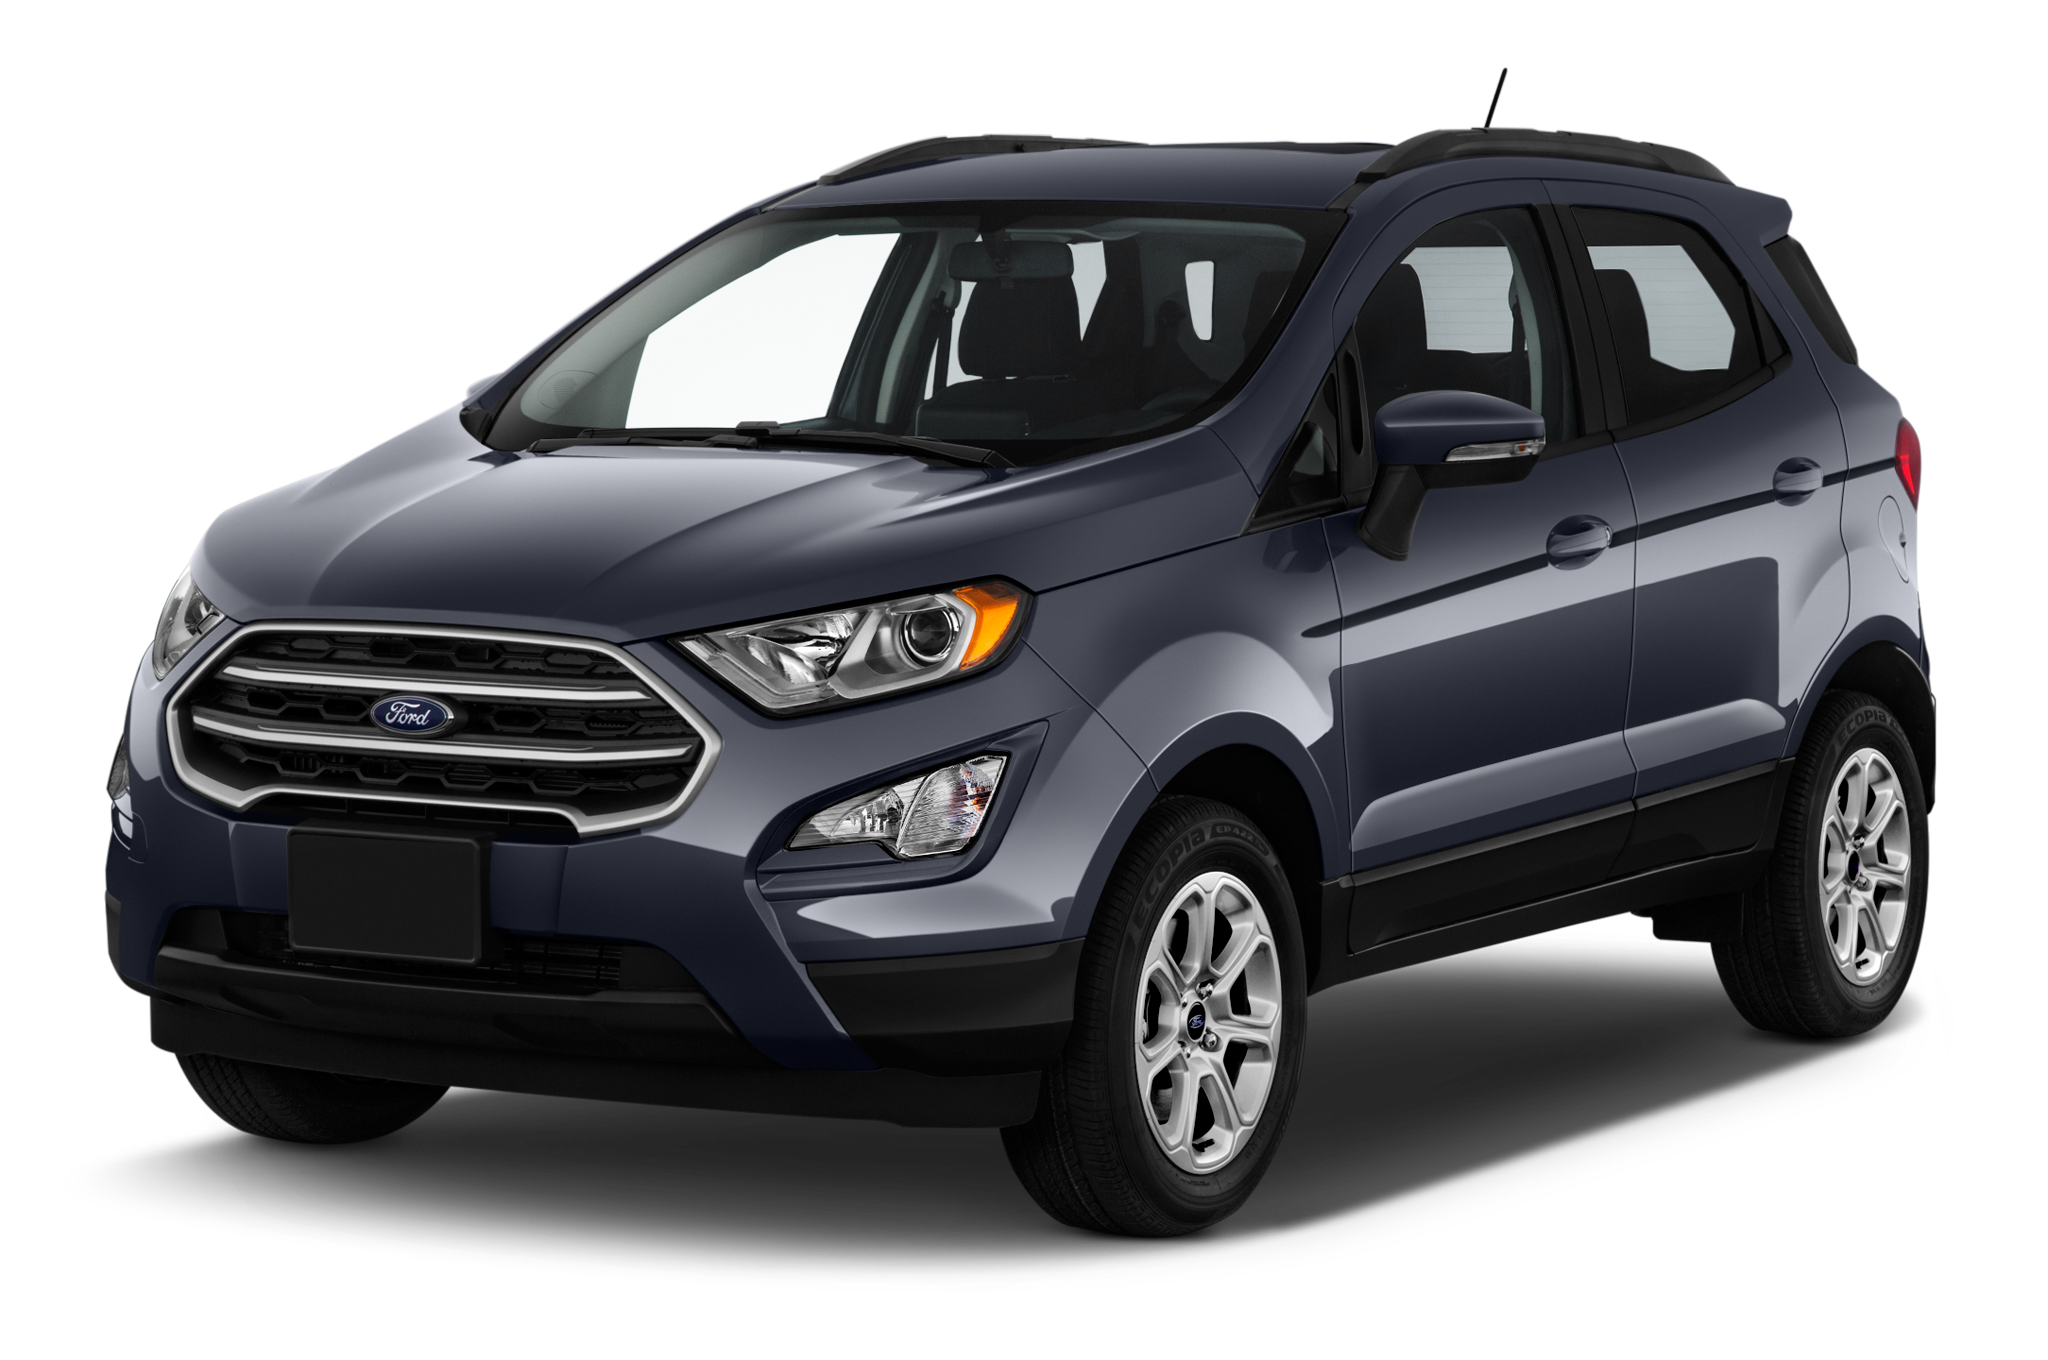 2018 ford ecosport s awd pricing msn autos. Black Bedroom Furniture Sets. Home Design Ideas